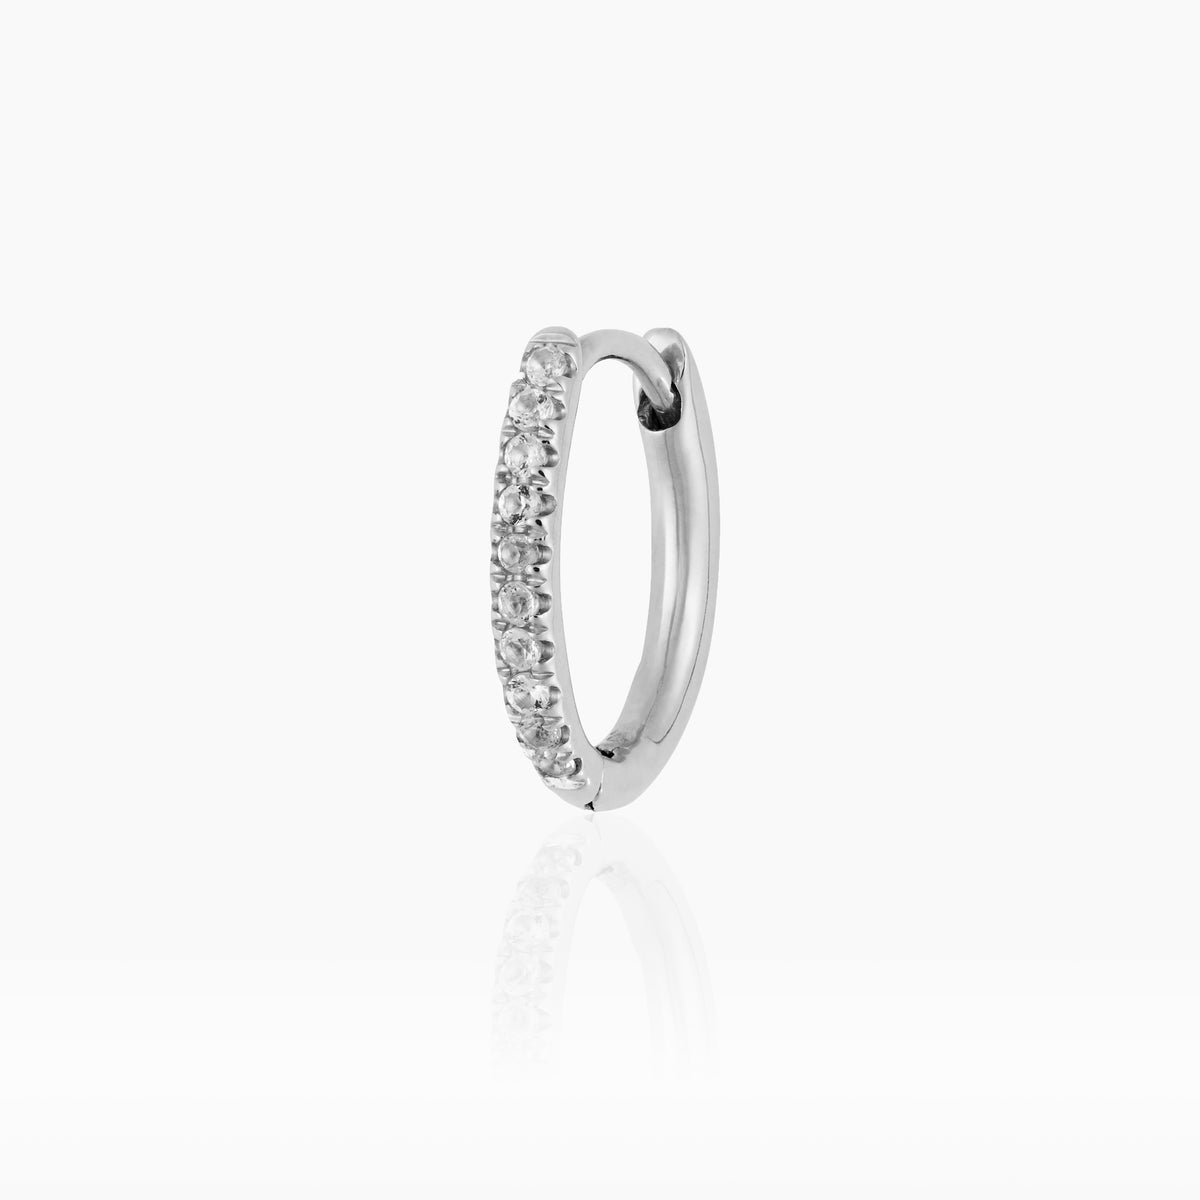 Mini Silver Oval Hoop with White Topaz (Pre-order)